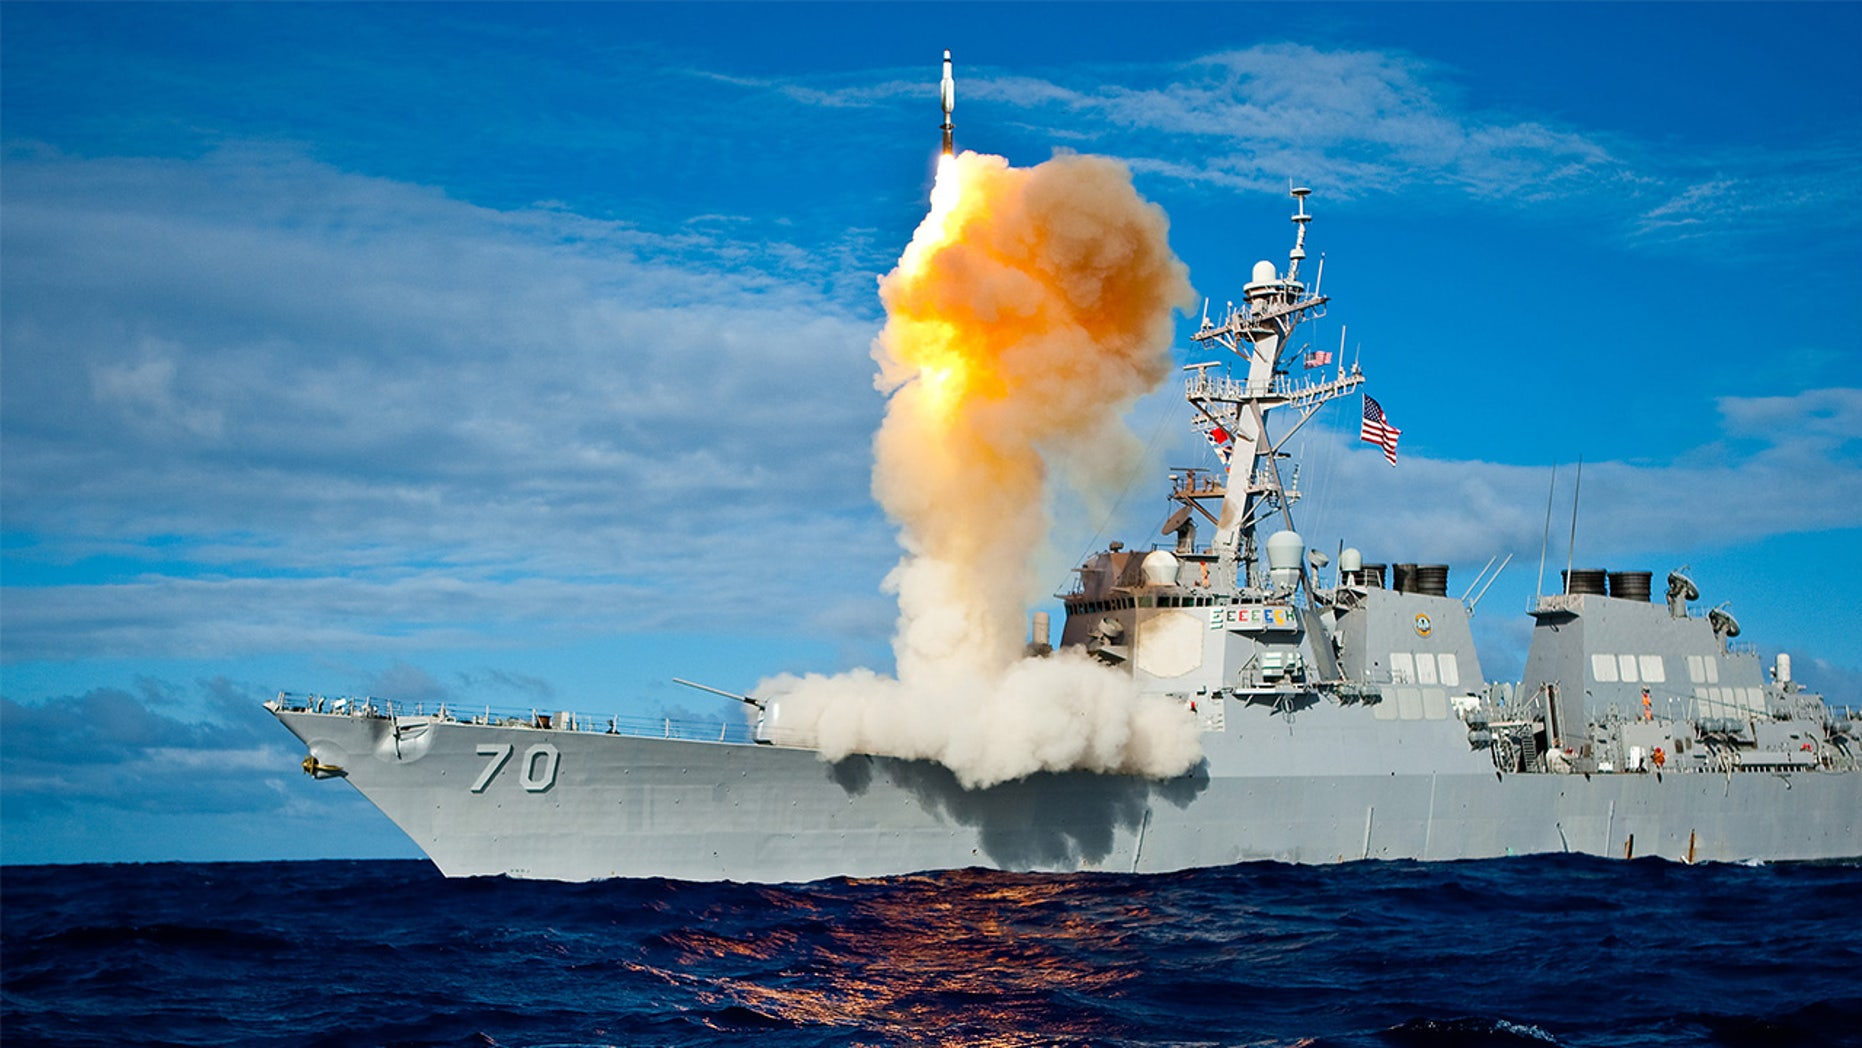 PACIFIC OCEAN (July 30, 2009) During exercise Stellar Avenger, the Aegis-class destroyer USS Hopper (DDG 70) launches a standard missile (SM) 3 Blk IA, successfully intercepting a sub-scale short range ballistic missile, launched from the Kauai Test Facility, Pacific Missile Range Facility (PMRF), Barking Sans, Kauai - file photo. (U.S. Navy photo/Released)